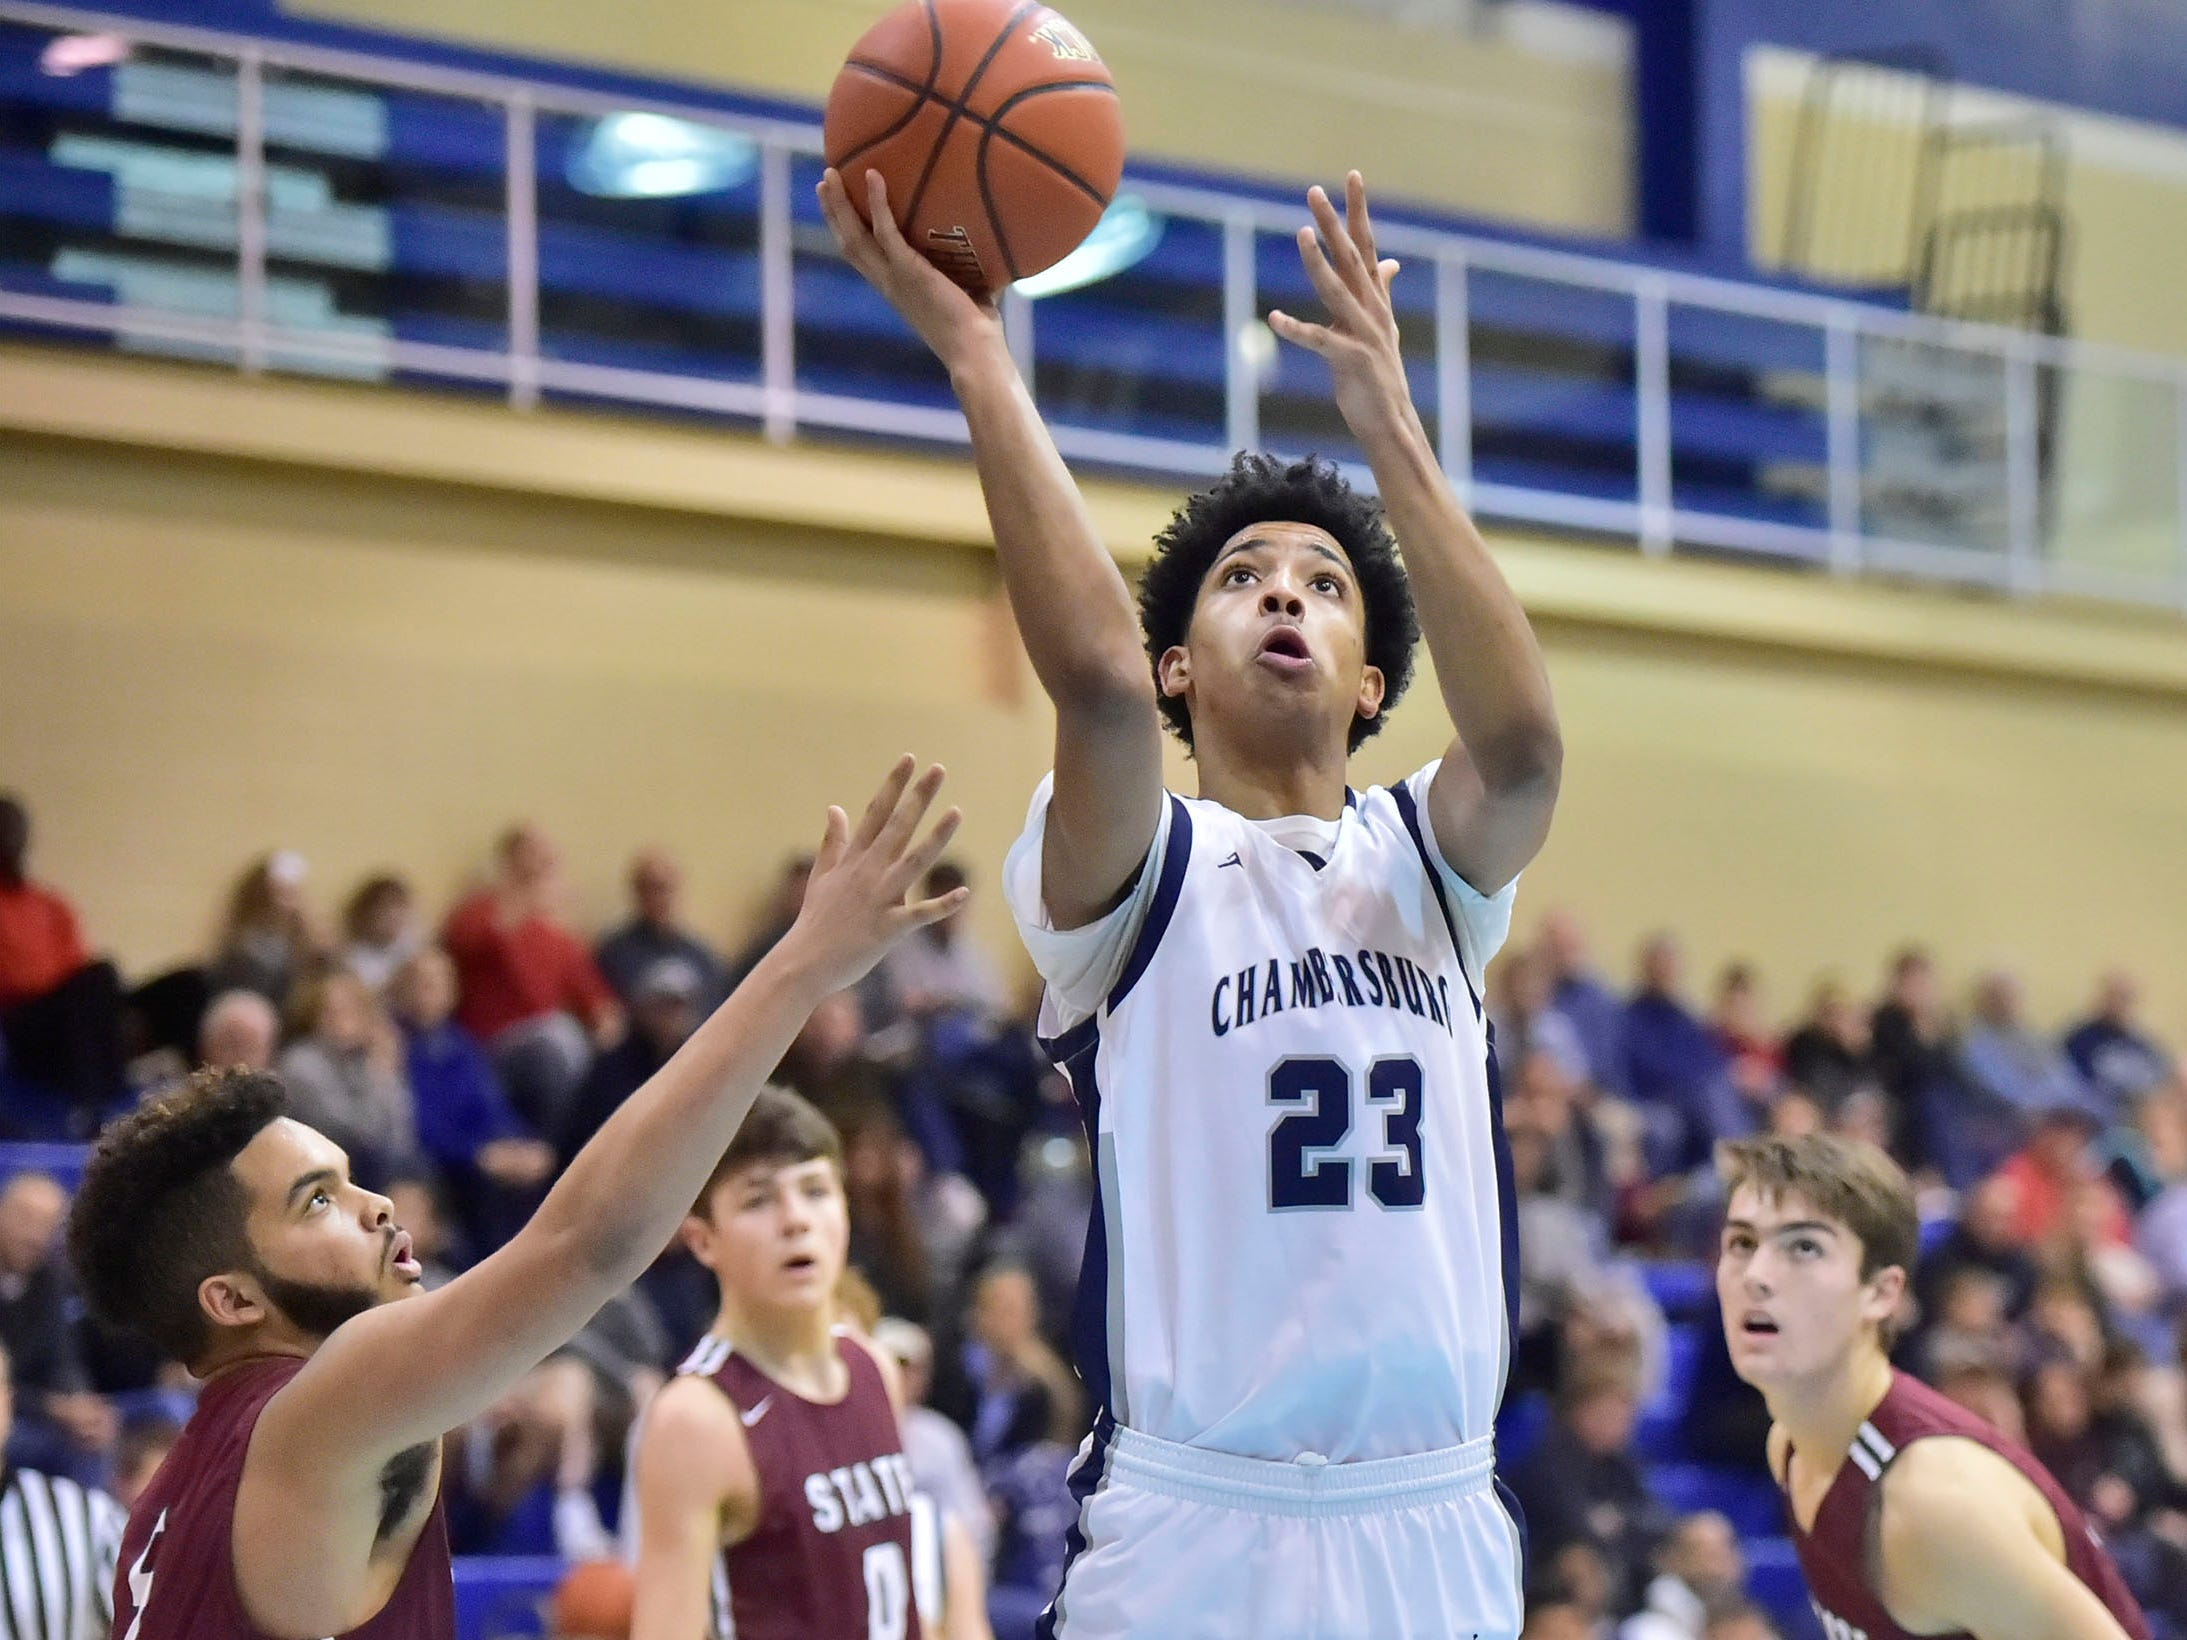 Max Doctor (23) shoots for the Trojans. Chambersburg dropped a buzzer-beater 42-40 to State College during  D3 basketball, Friday, Dec. 14, 2018.